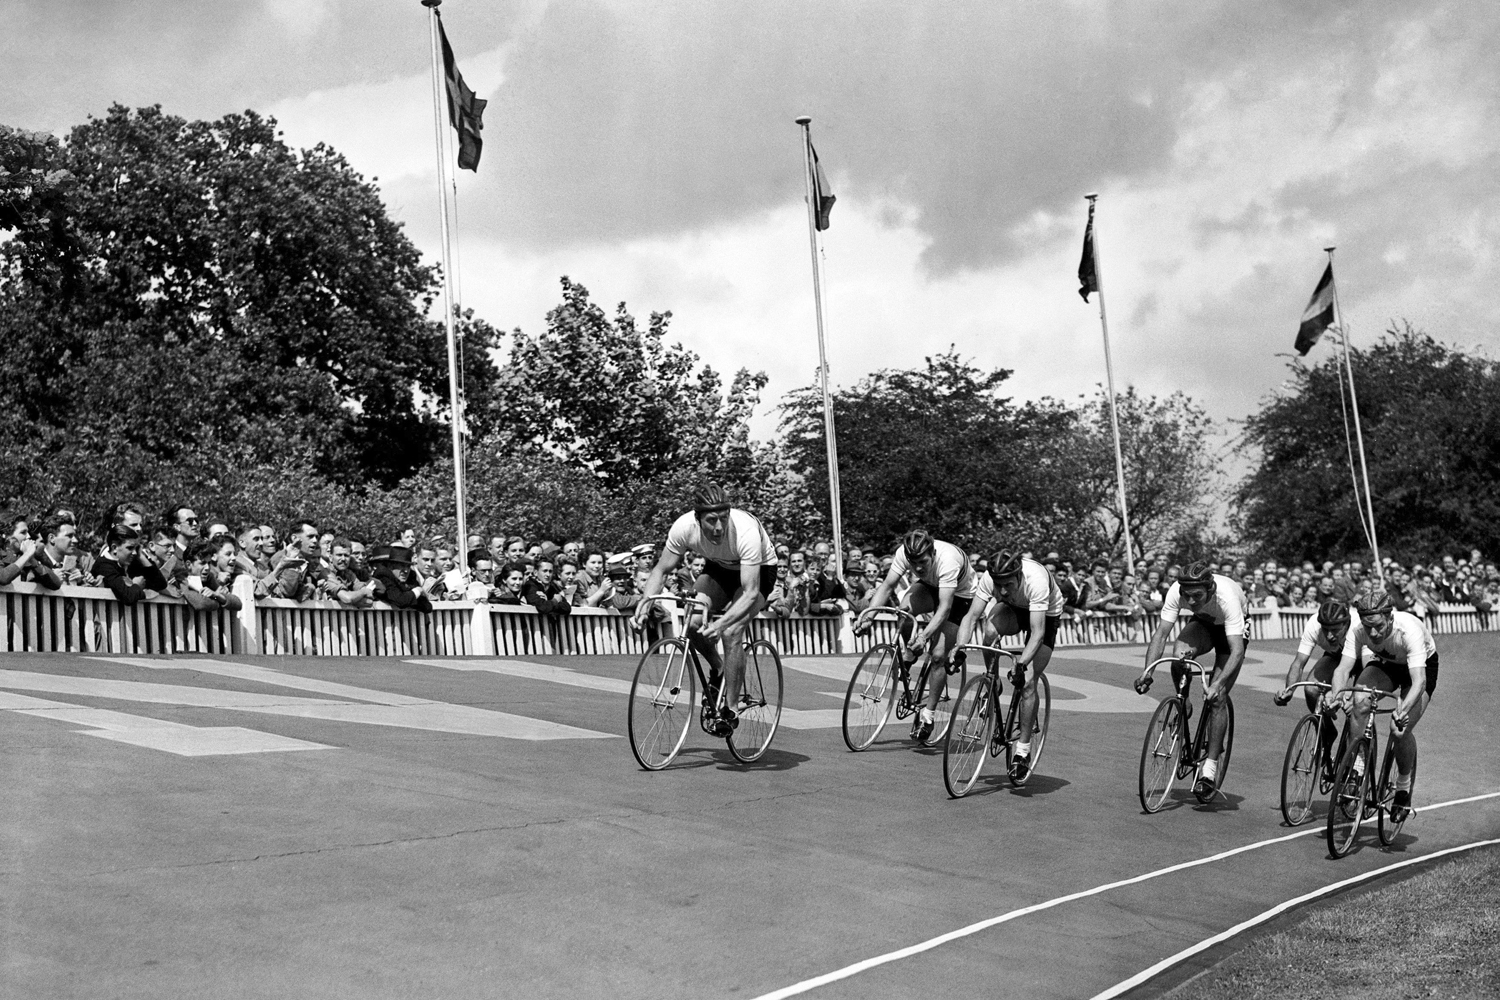 The Great Britain cycling team, including Tommy Godwin, laps Canada in the 4000-meters race at the 1948 Olympics.